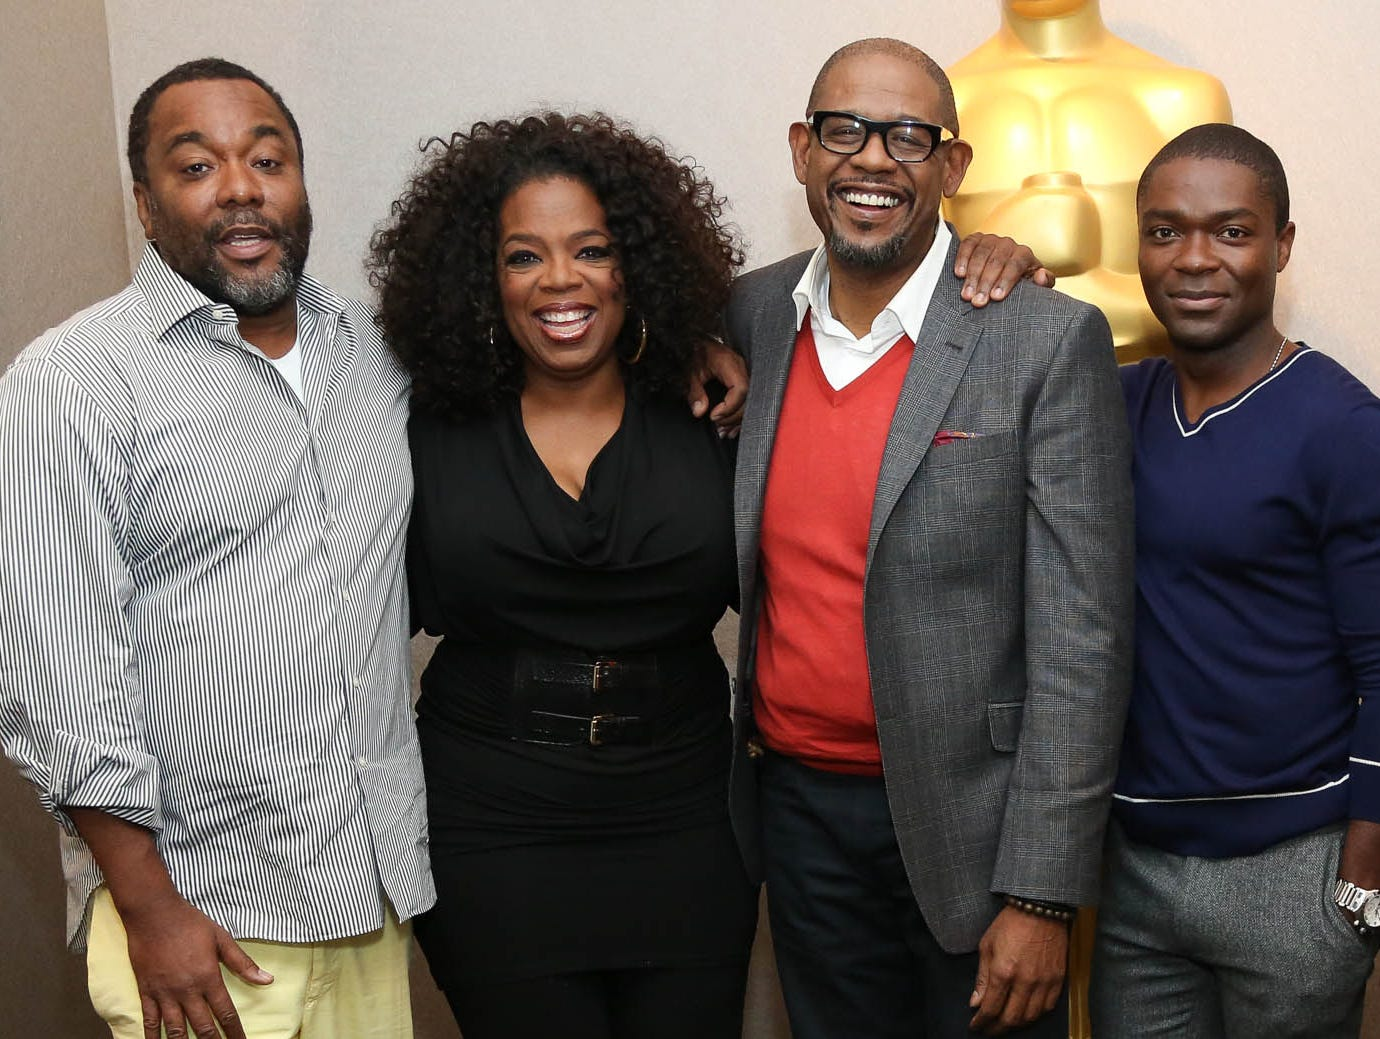 Oprah Winfrey hangs with director Lee Daniels, left, and co-stars Forest Whitaker and David Oyelowo at The Academy of Motion Picture Arts and Sciences member screening of 'The Butler' on Aug. 6 in New York. She opts for a simple monochromatic look next to the more colorful Daniels and Whitaker.